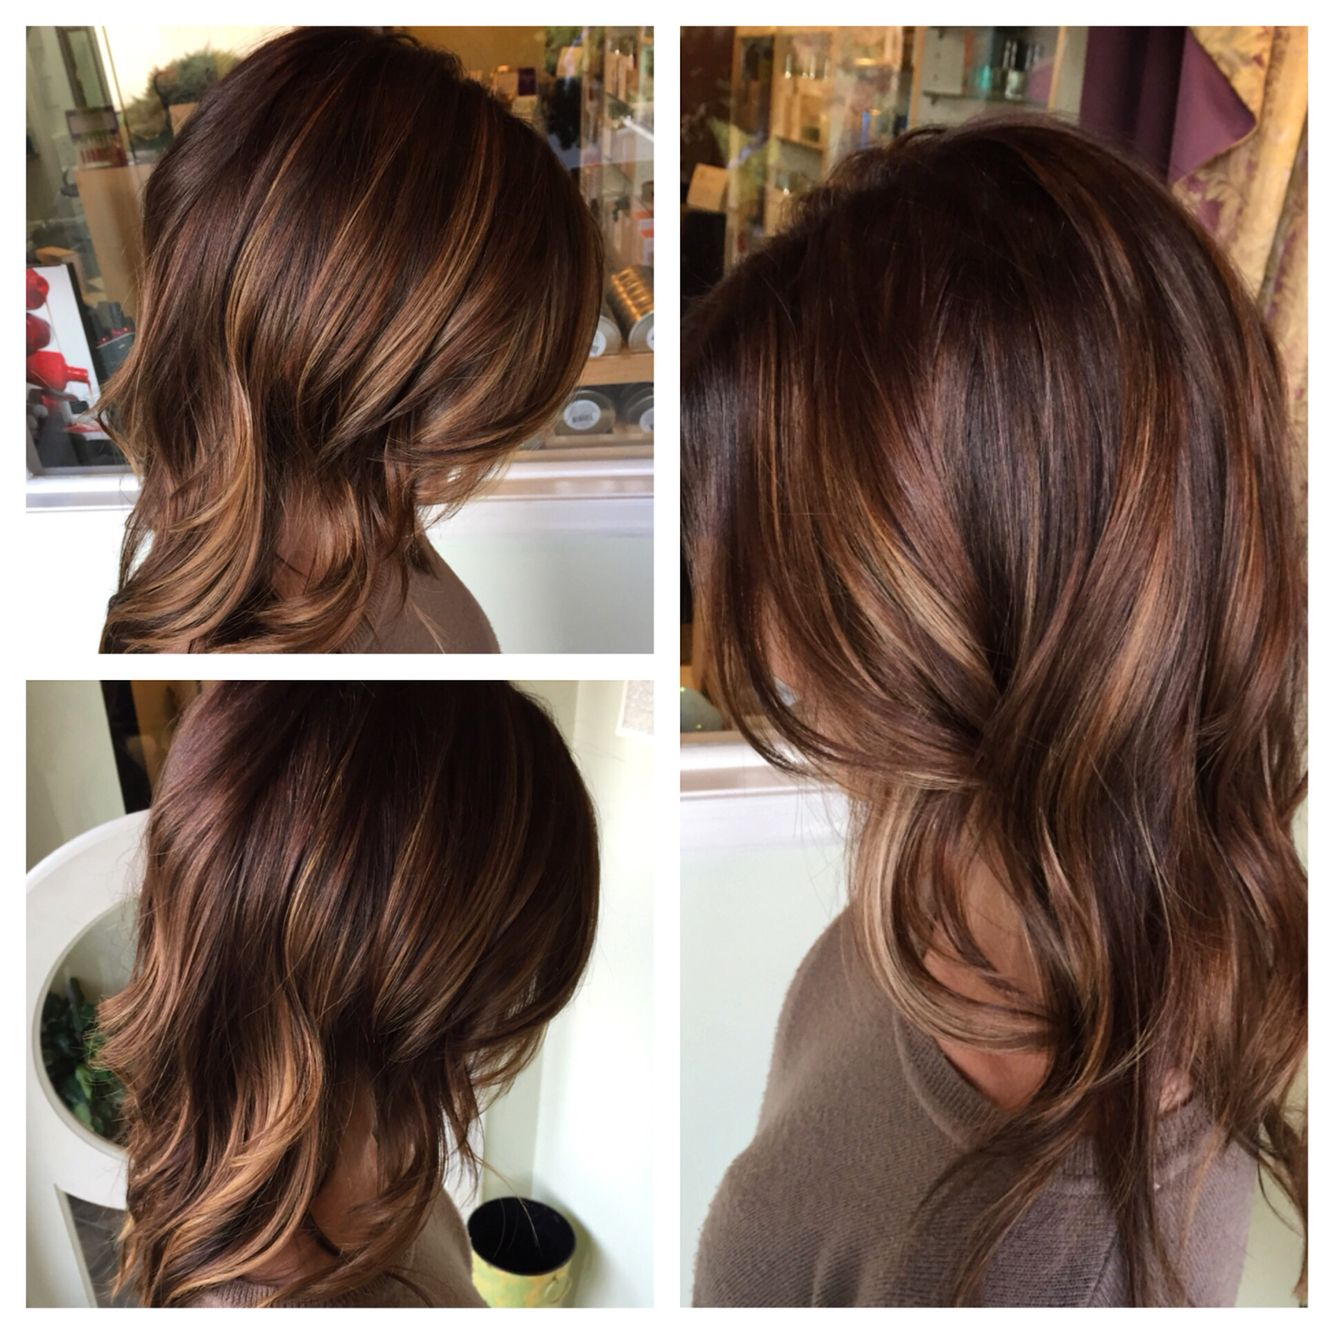 A Warm Brunette With Honey And Caramel Dimension By Blake